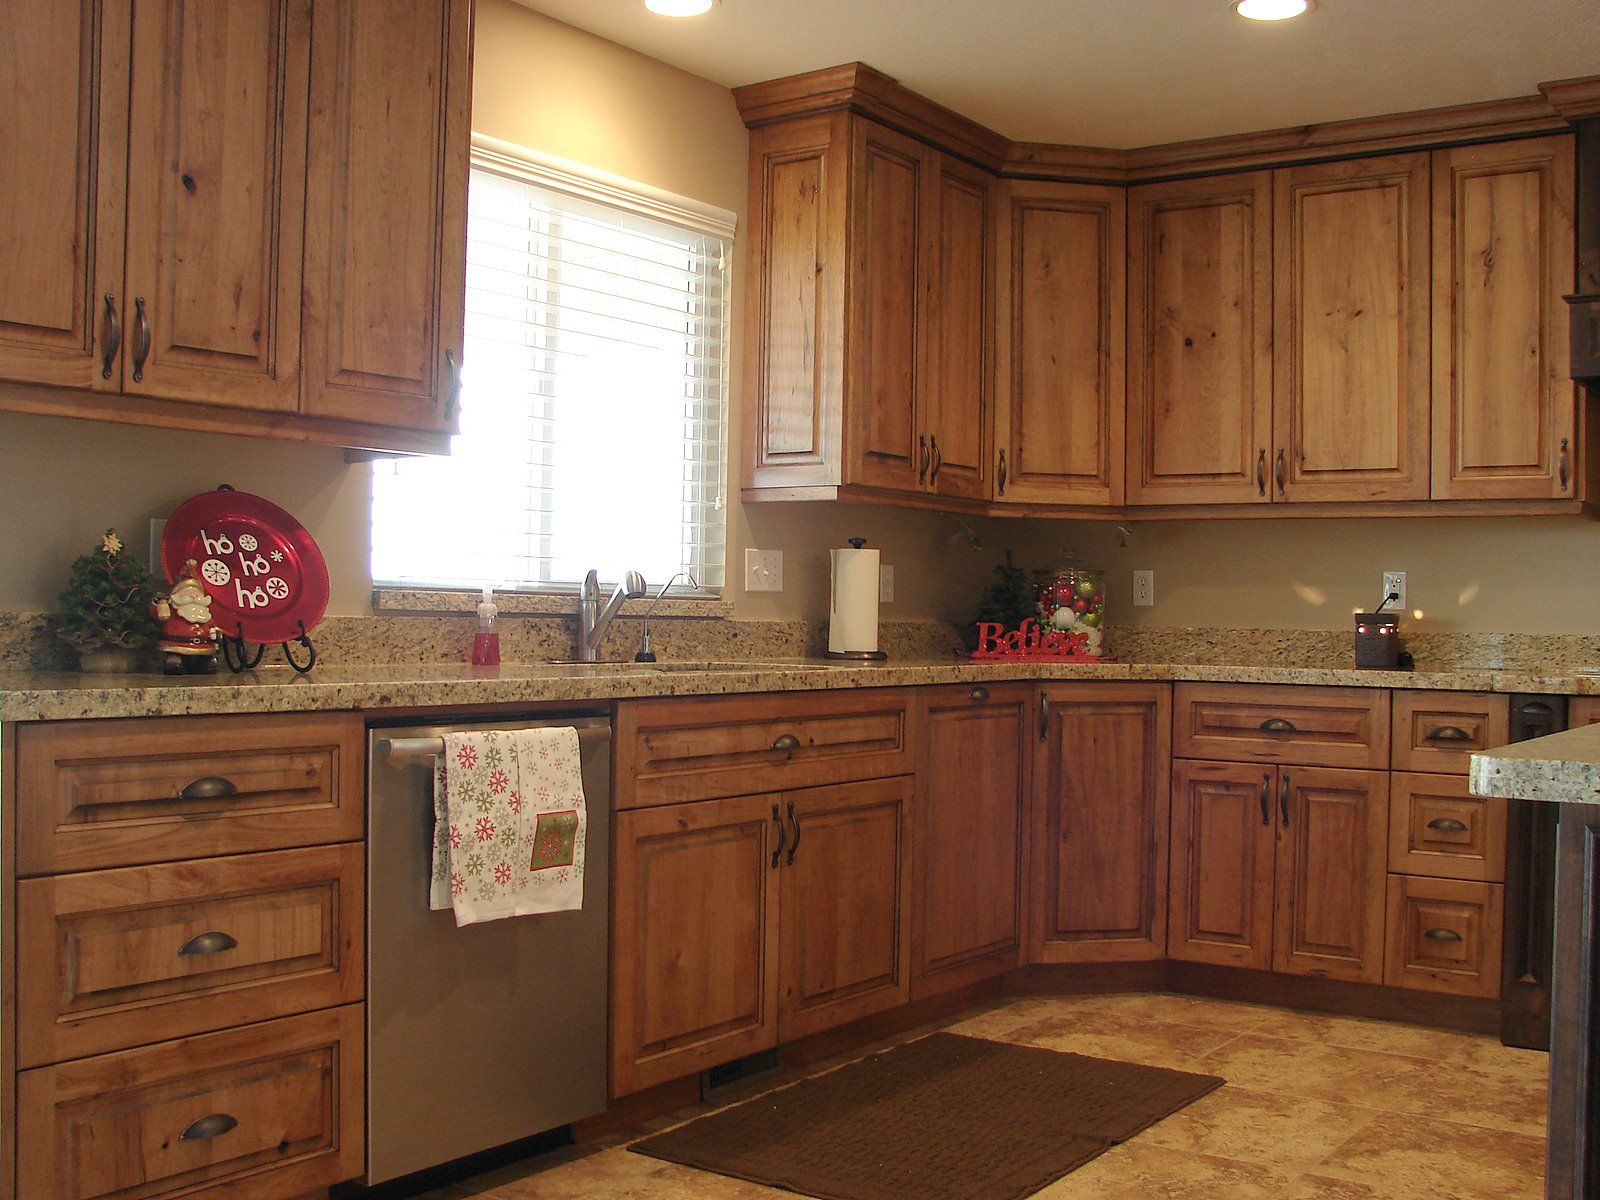 rustic farmhouse kitchen cabinets Rustic Cherry Cabinets